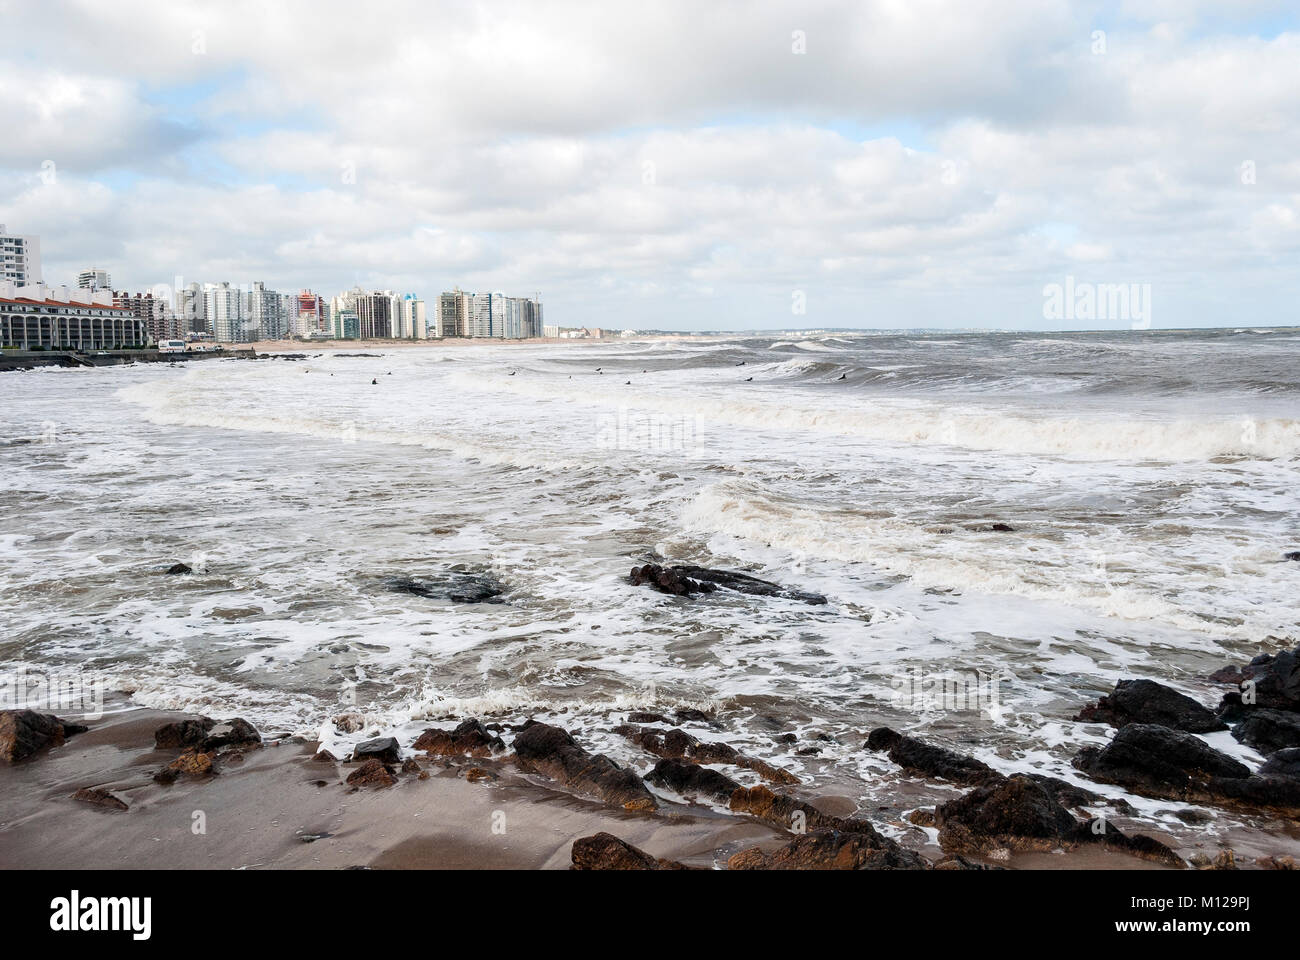 Punta del este view from the beach. The sea was choppy. - Stock Image